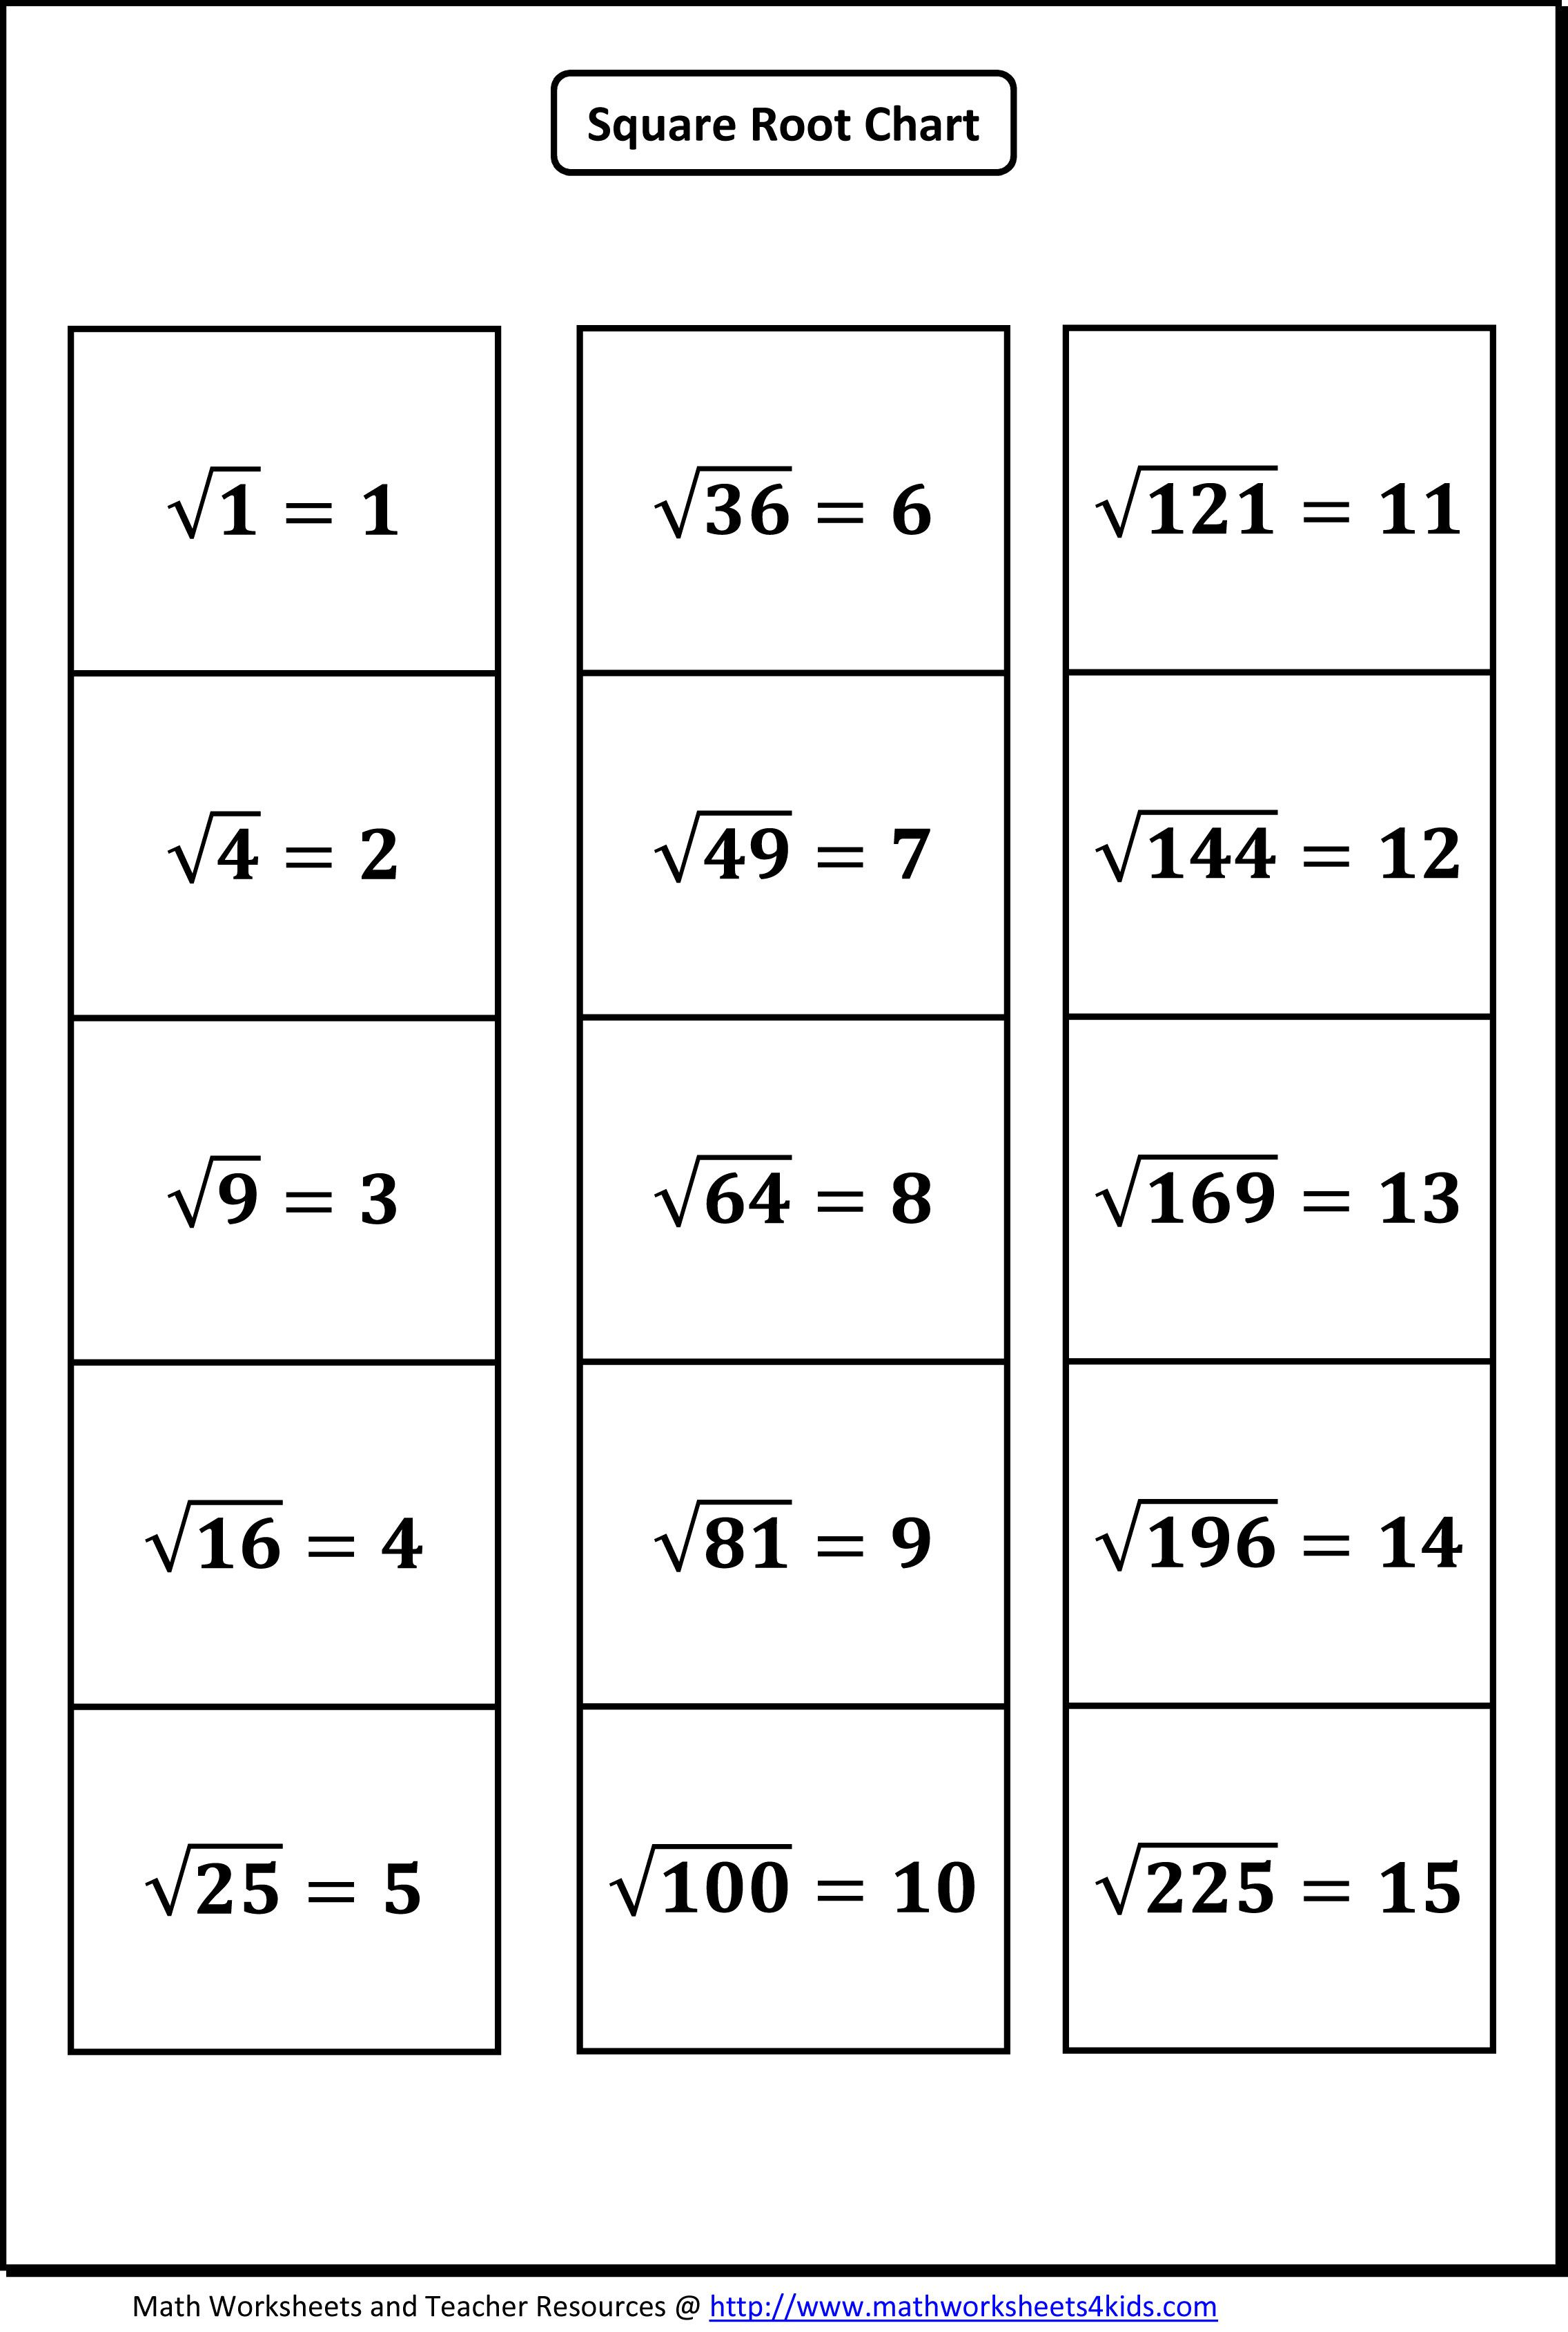 worksheet Perfect Squares Worksheet perfect square bingo squares and link this page includes printable root charts worksheets for numbers fractions decimals simplifying surds more